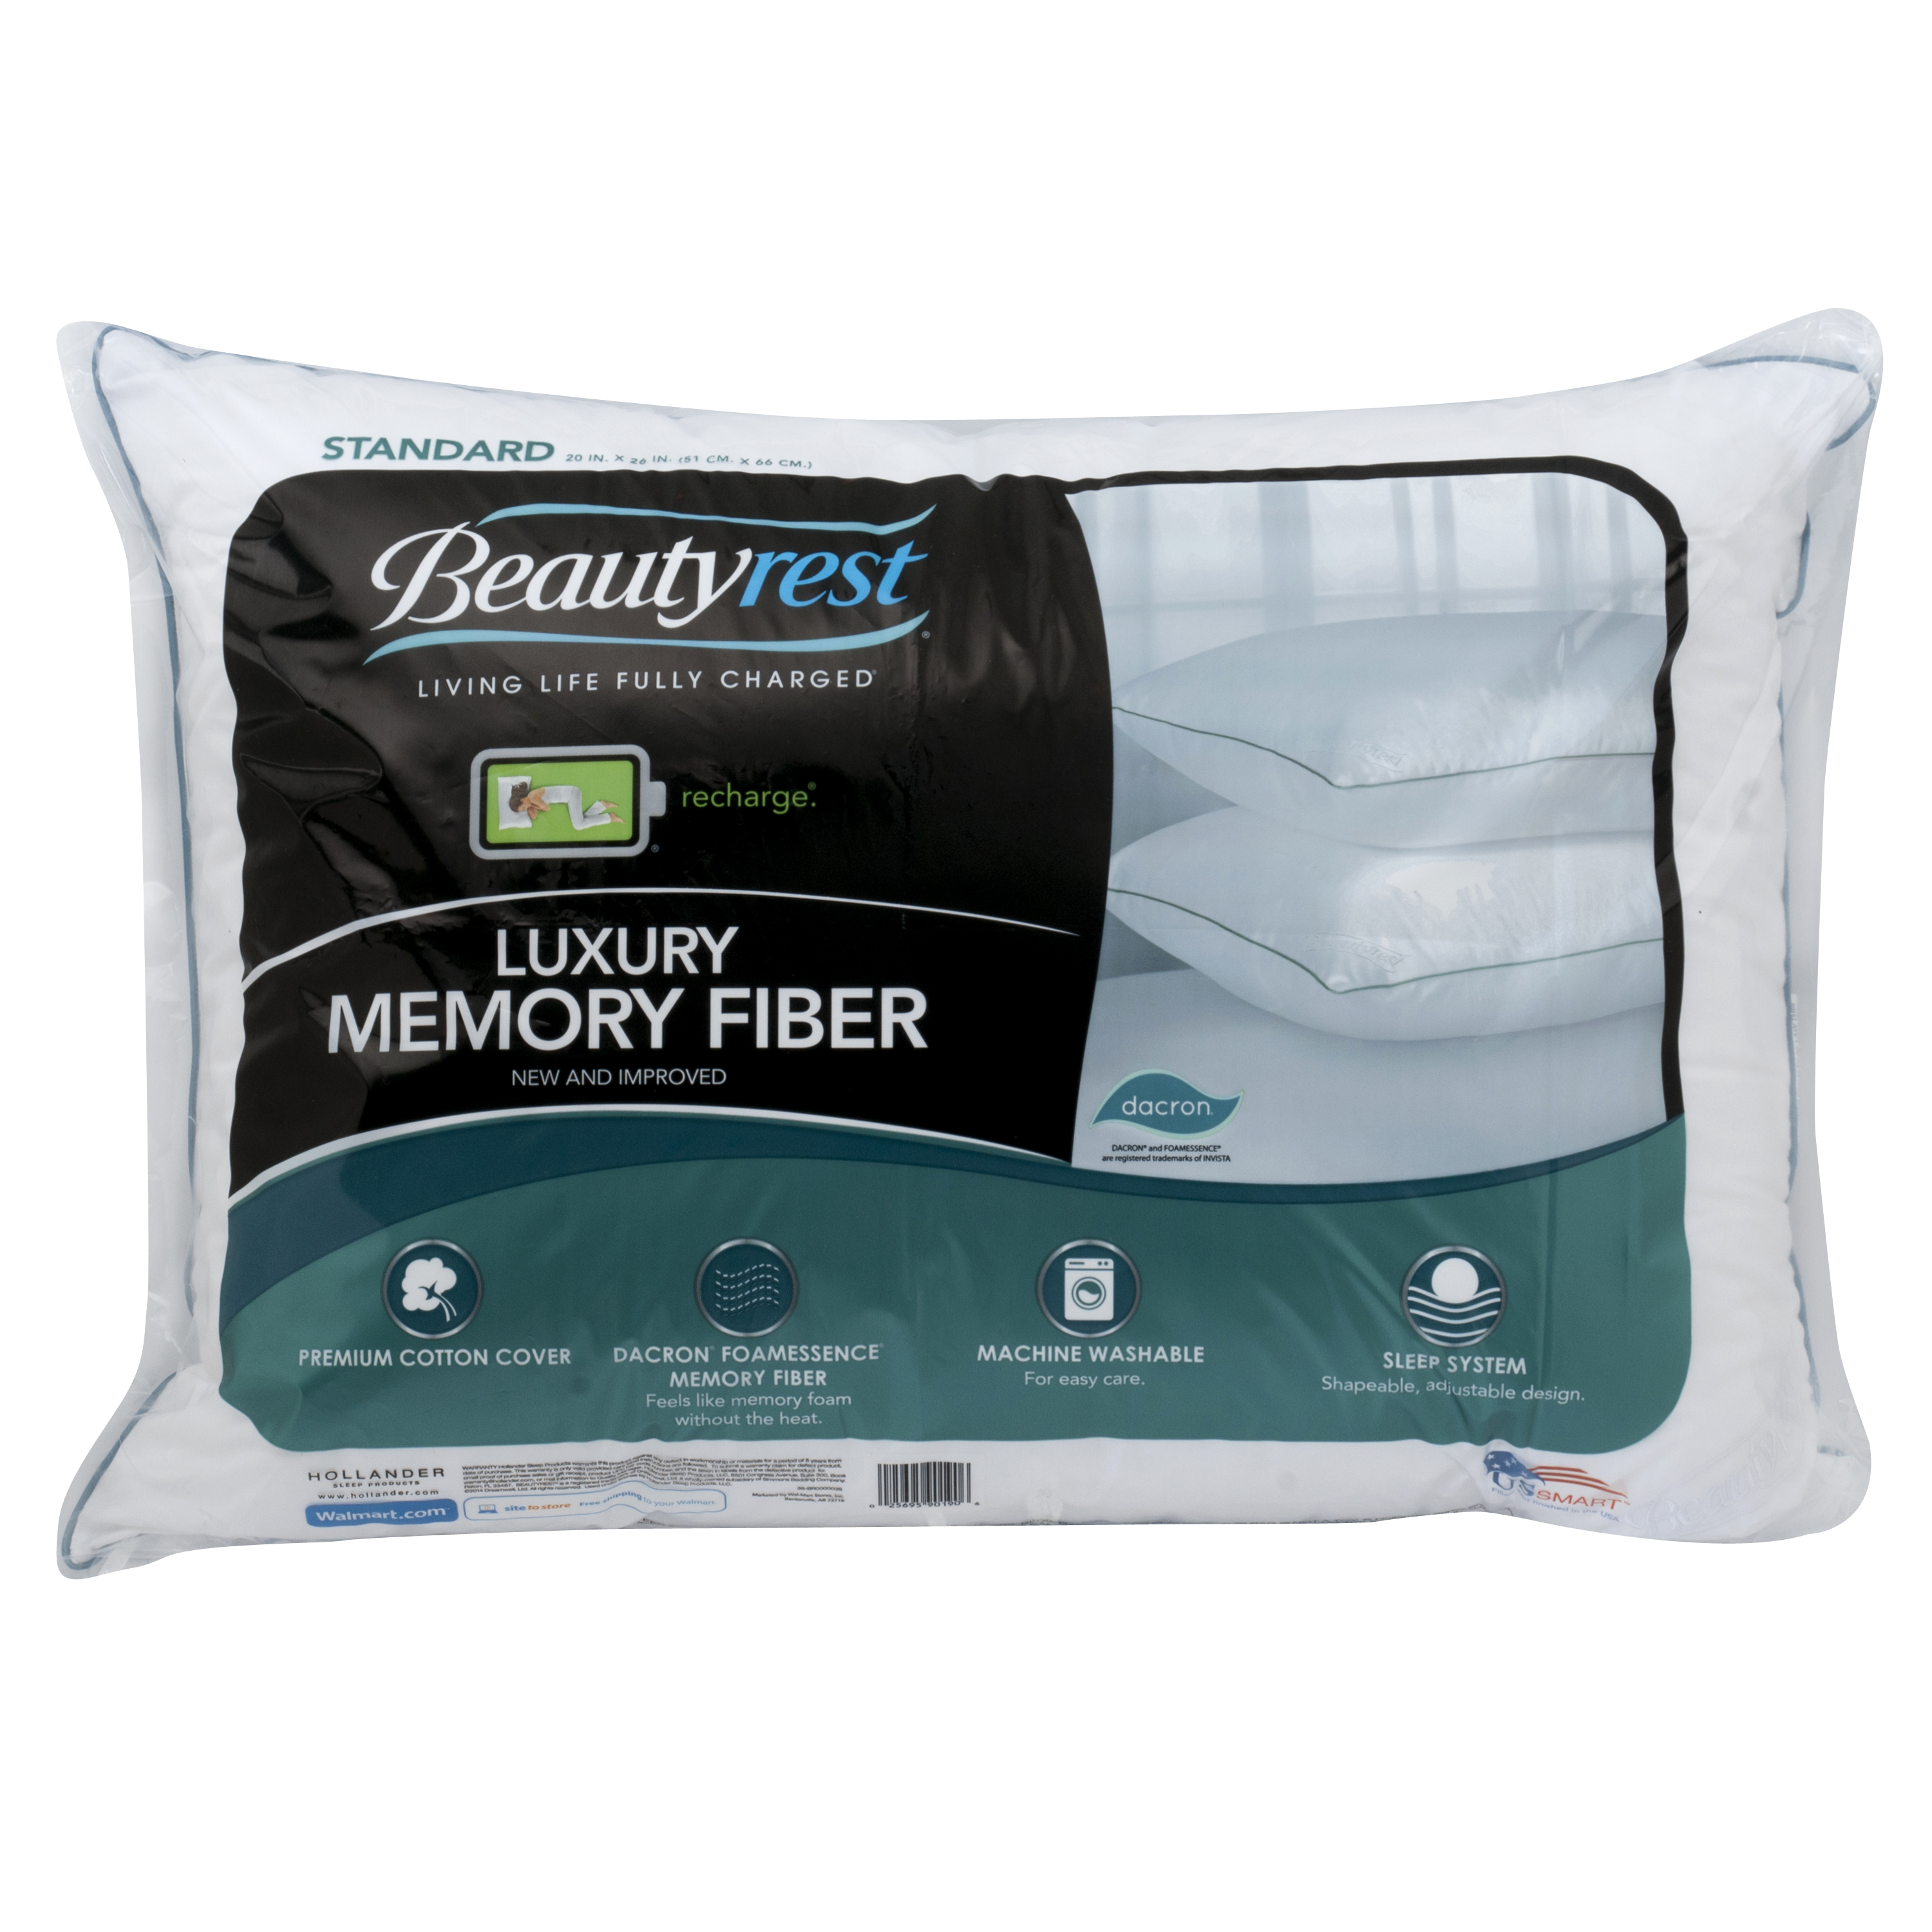 Beautyrest Luxury Memory Fiber Pillow 233TC 100% Cotton in Multiple Sizes